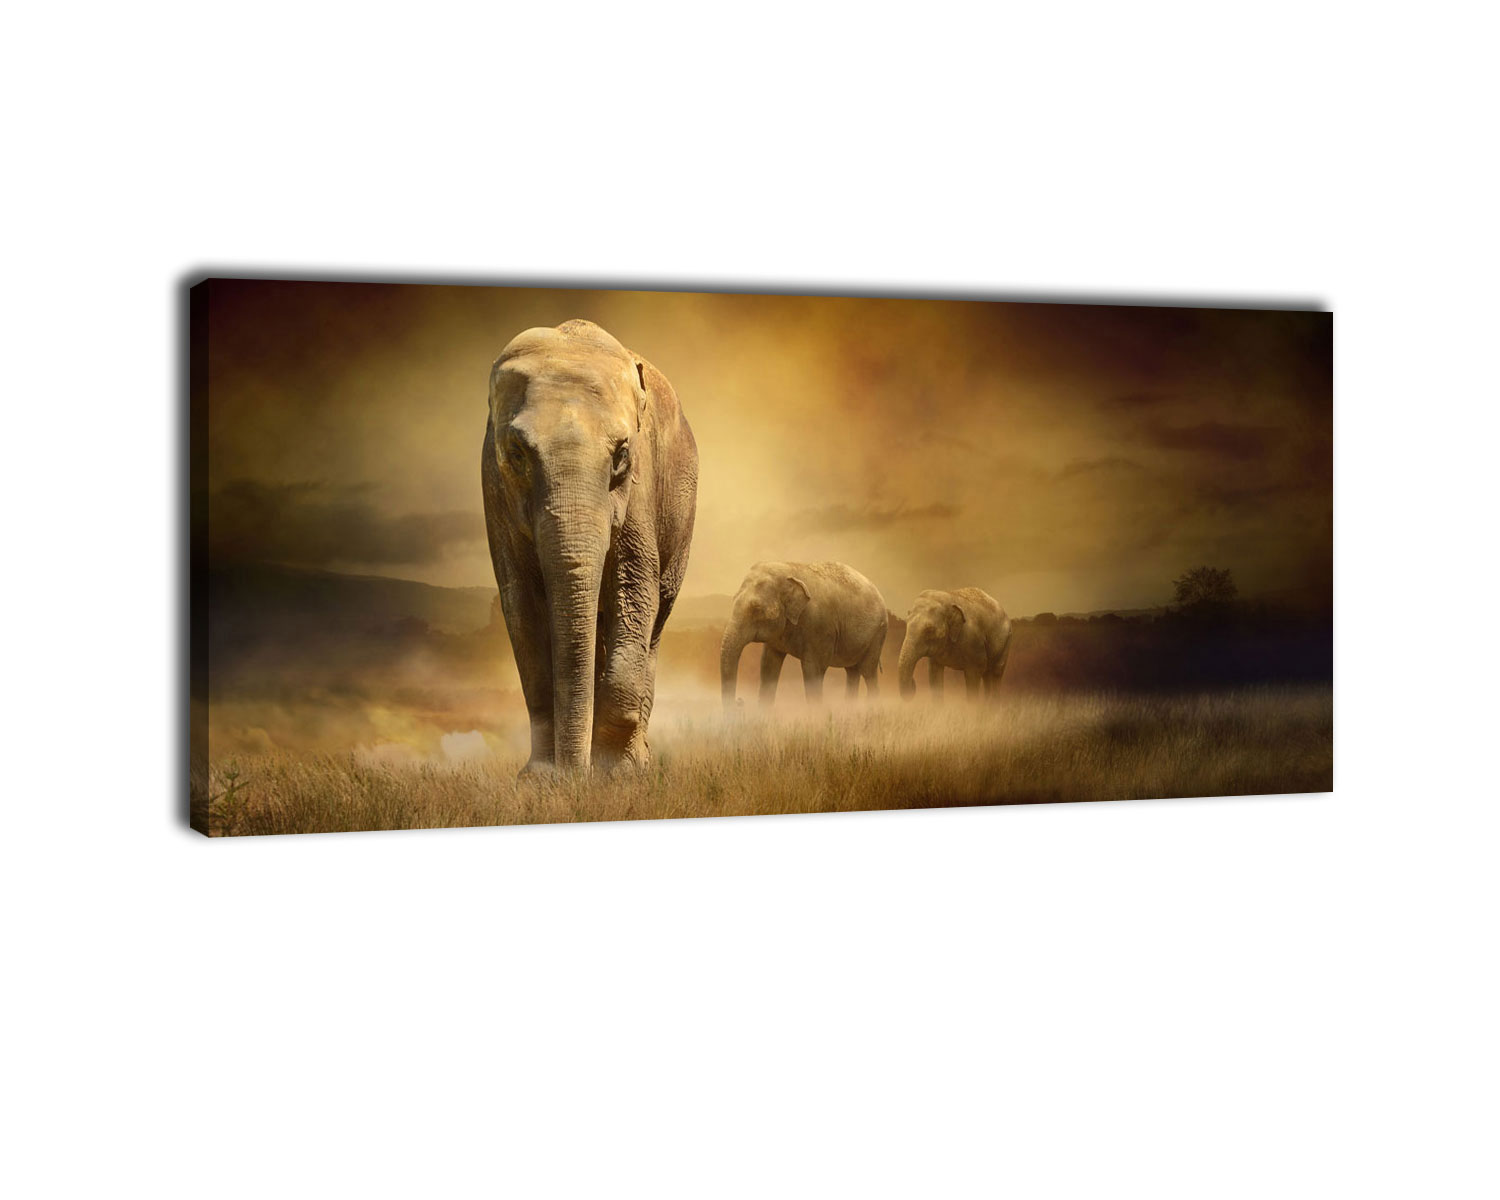 leinwandbild steppenelefant afrika bild auf leinwand kunstdruck ebay. Black Bedroom Furniture Sets. Home Design Ideas